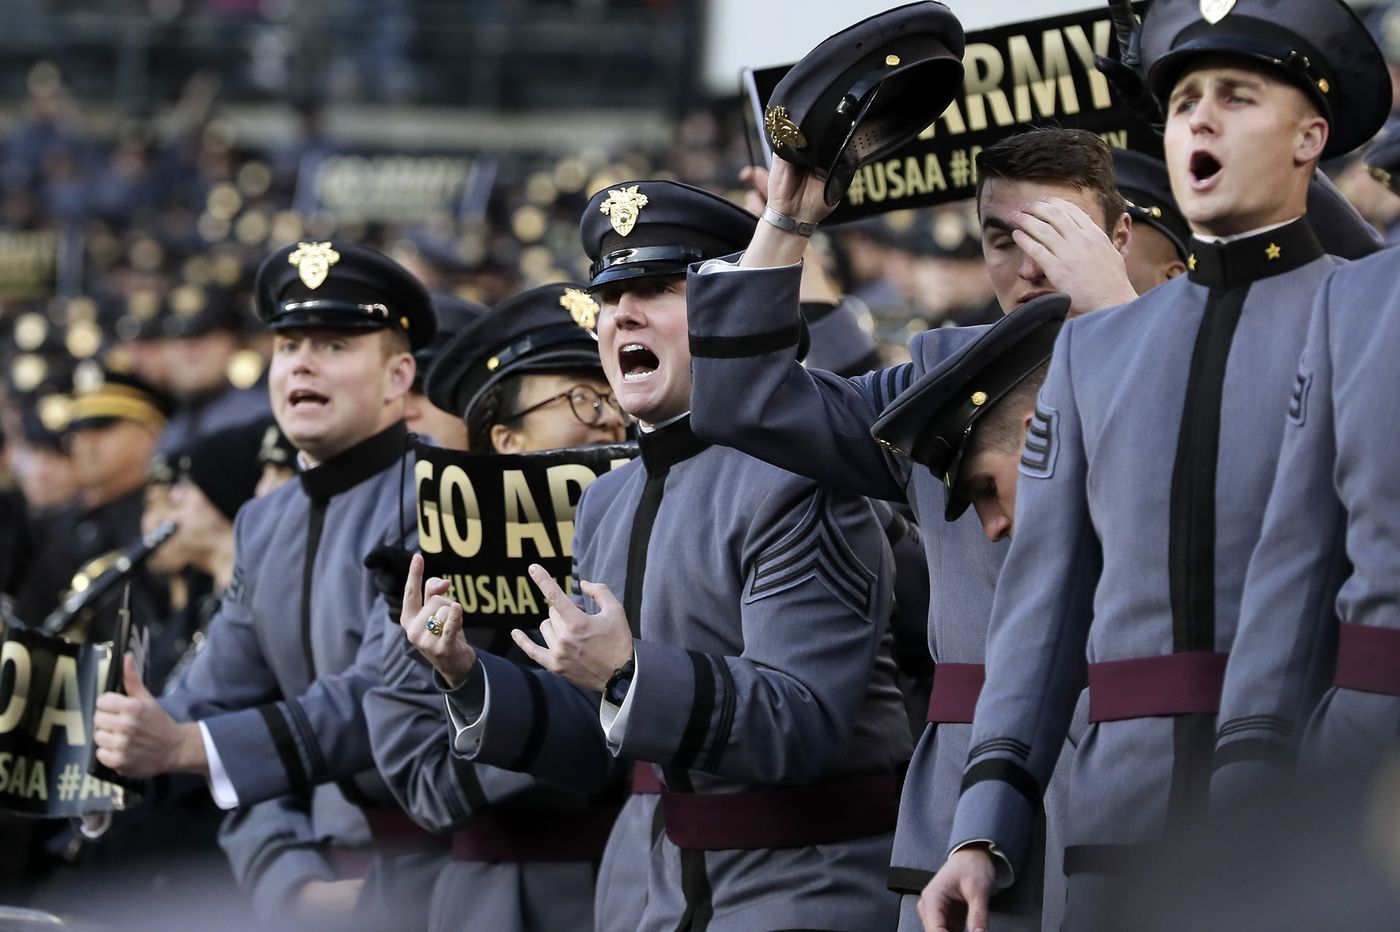 Army-Navy game is moving from Philadelphia to West Point due to attendance restrictions at the Linc